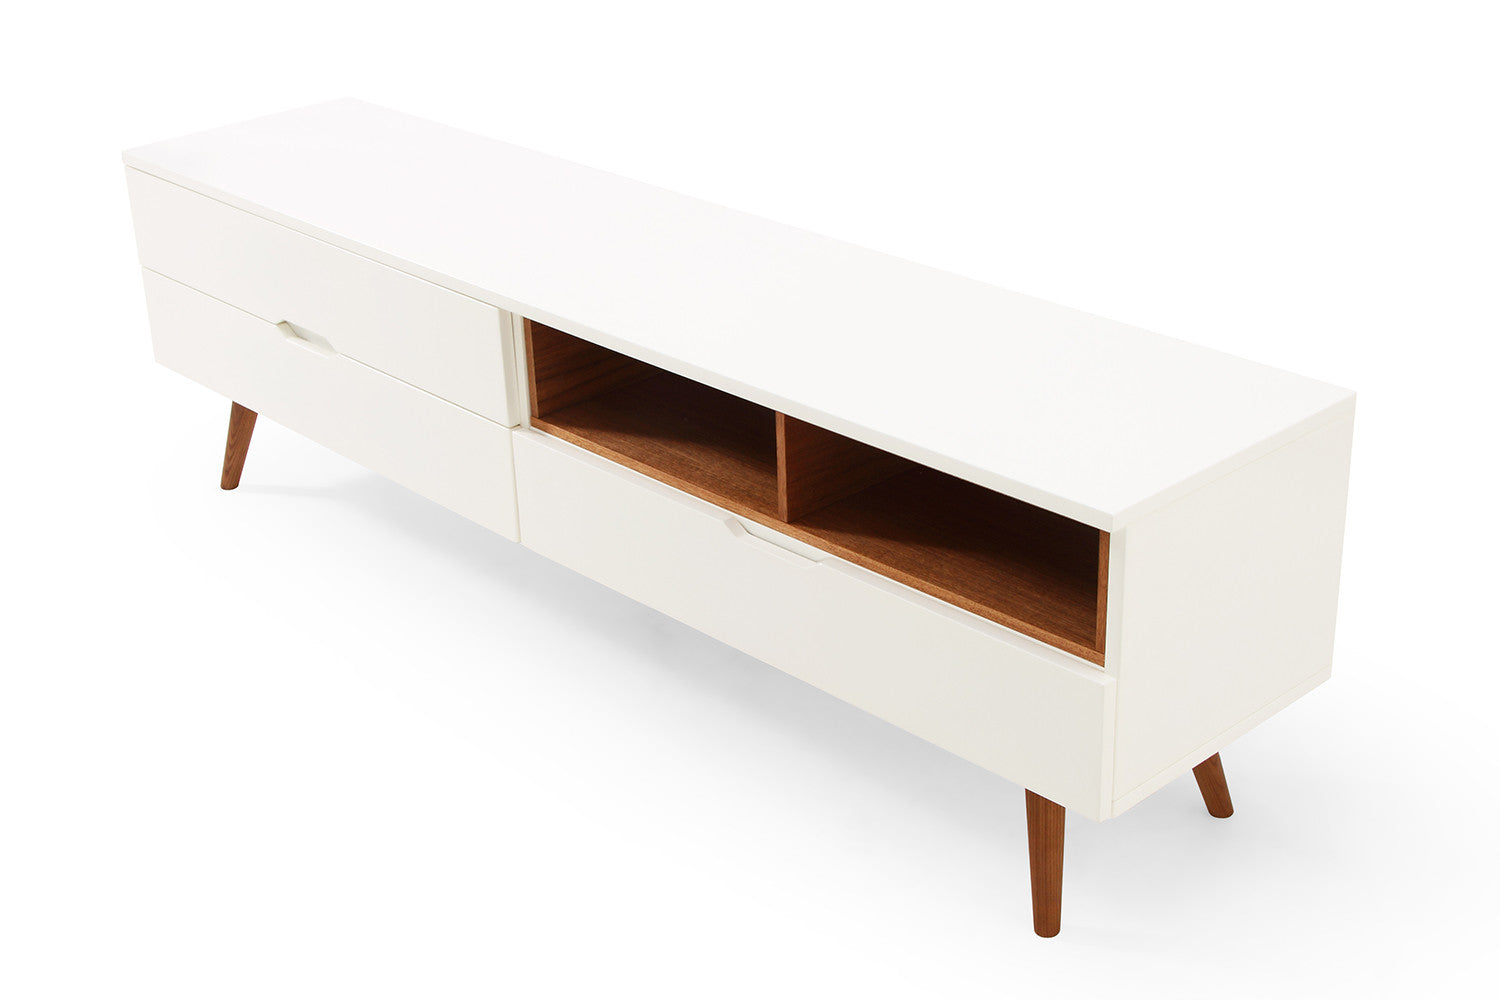 Meuble Tv Design Scandinave Lema Dewarens # Meuble Tv Design Suedois